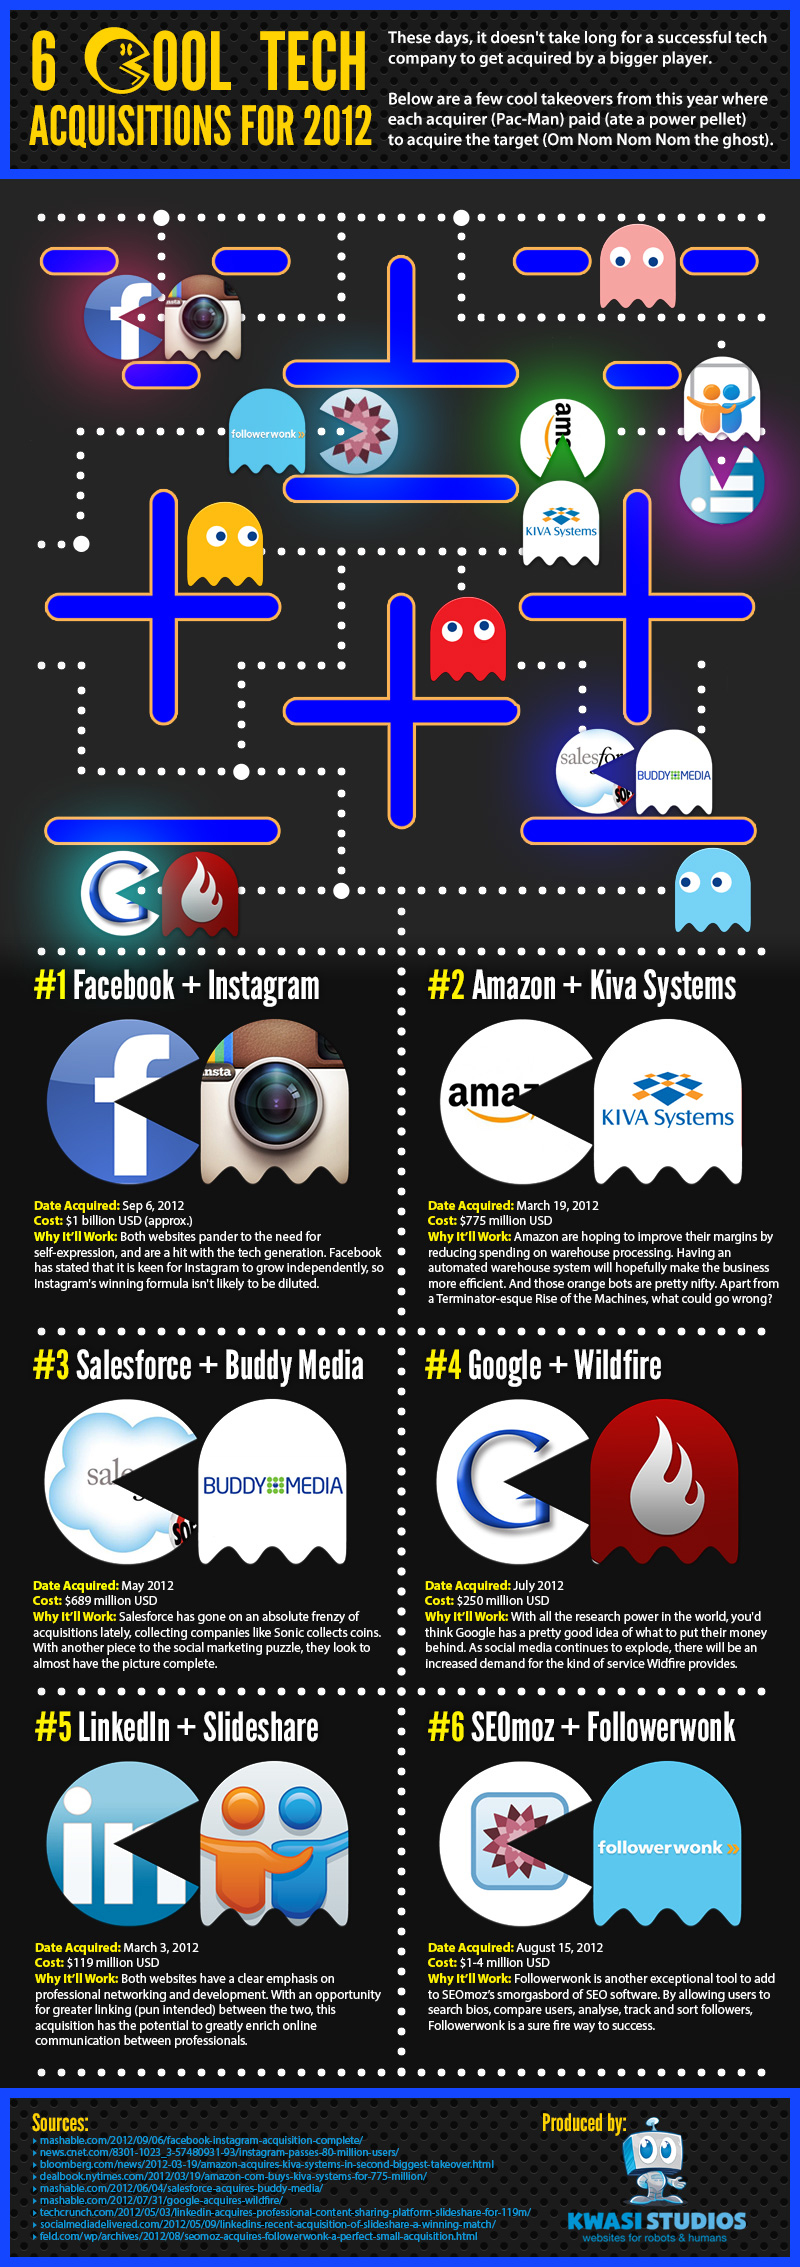 6-cool-tech-acquisitions-2012.jpg